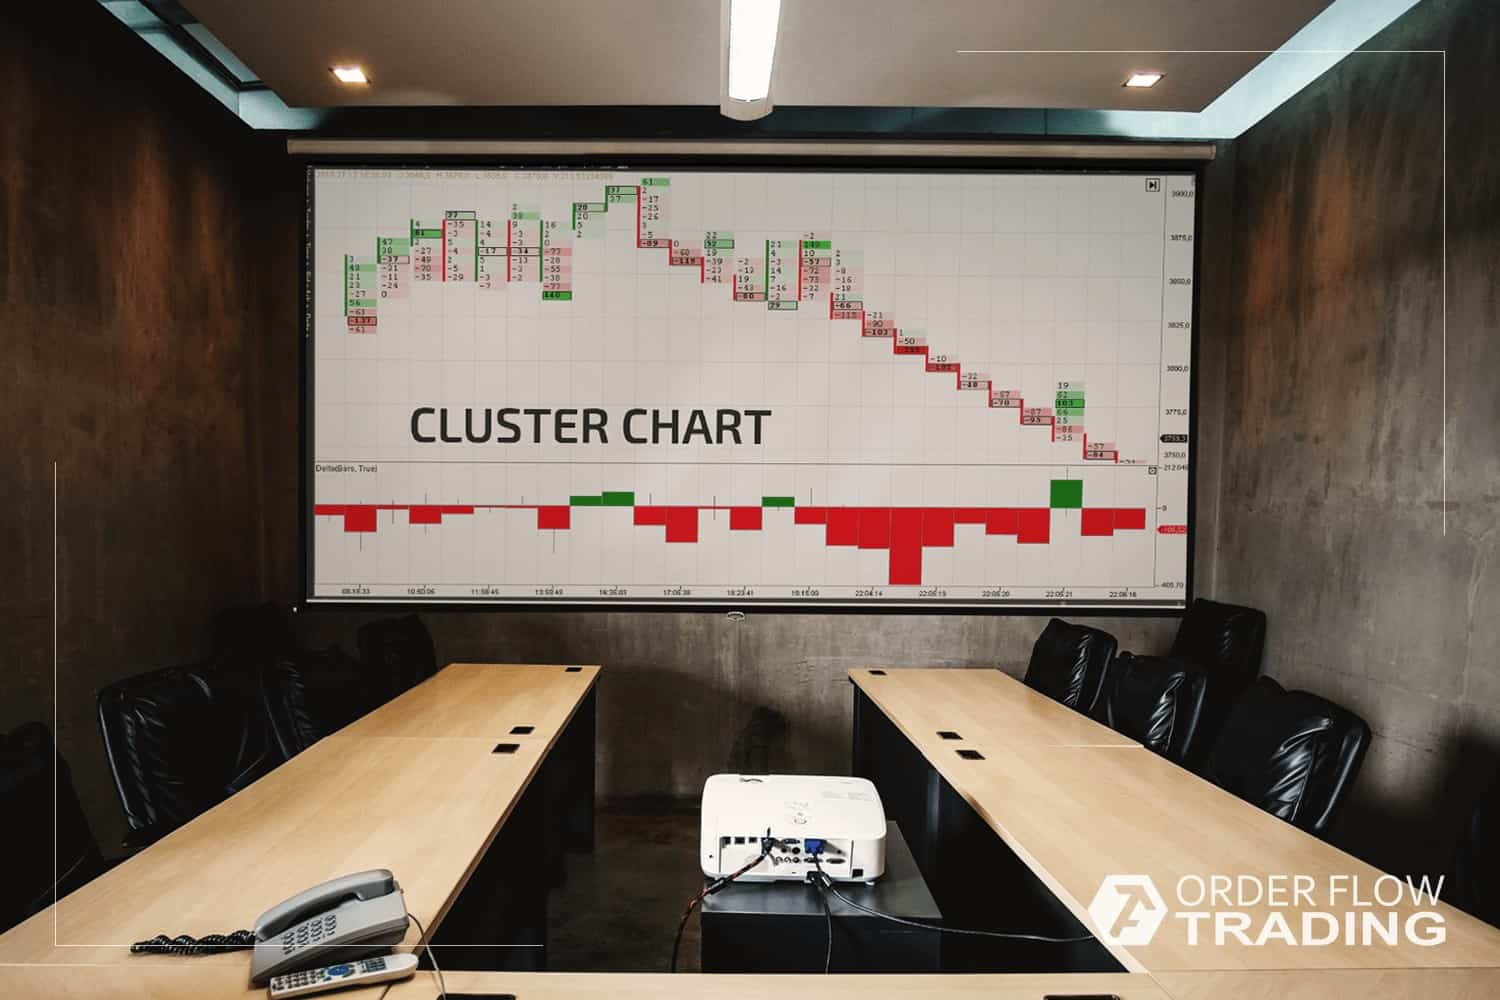 Range bar charts. How to analyze the delta and footprint in the ATAS platform